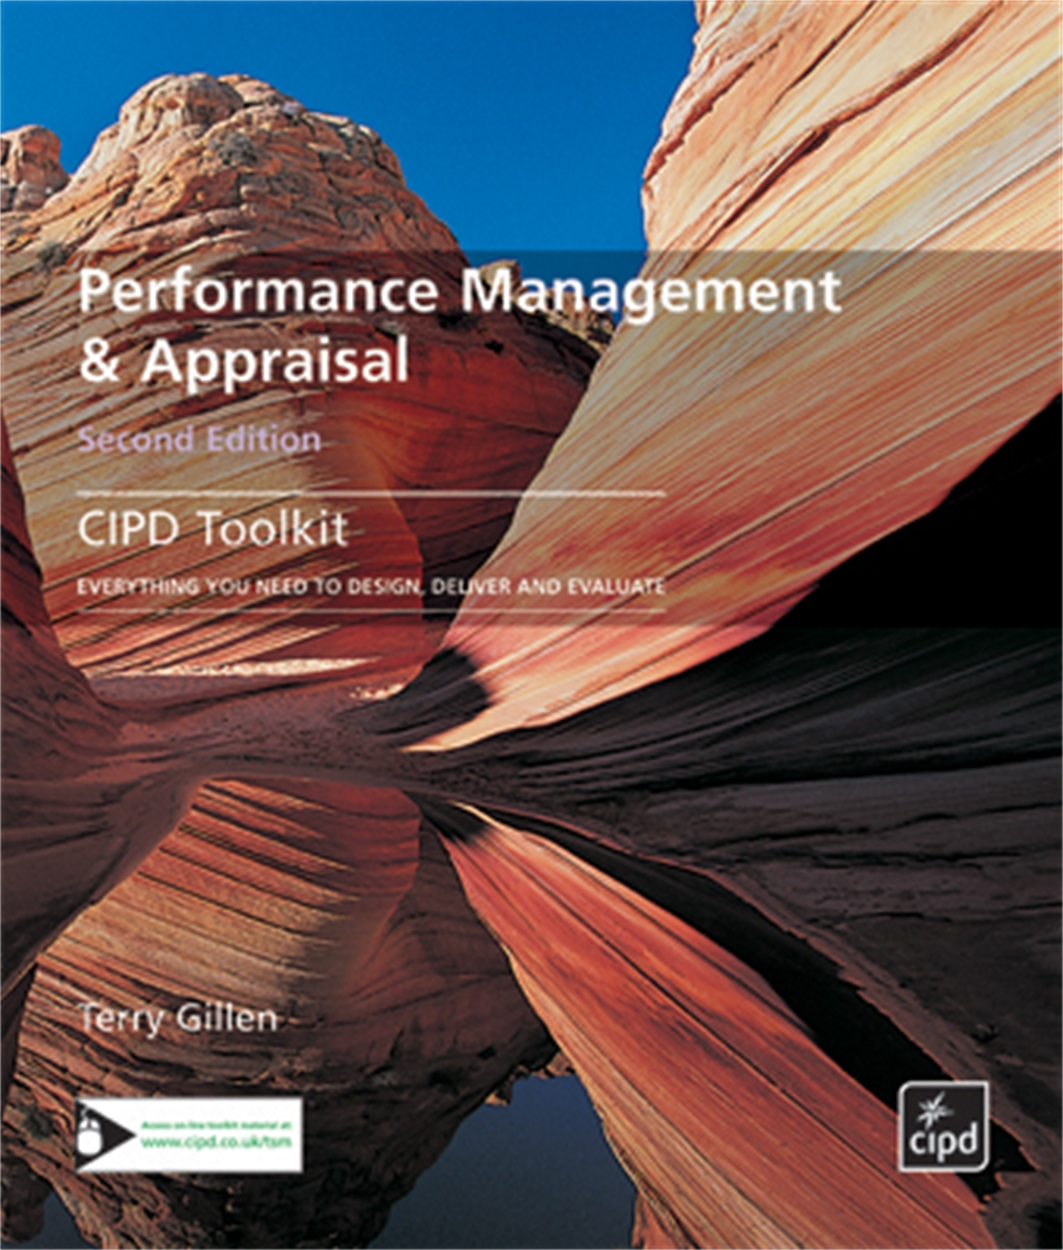 Performance Management and Appraisal (9781843981701)